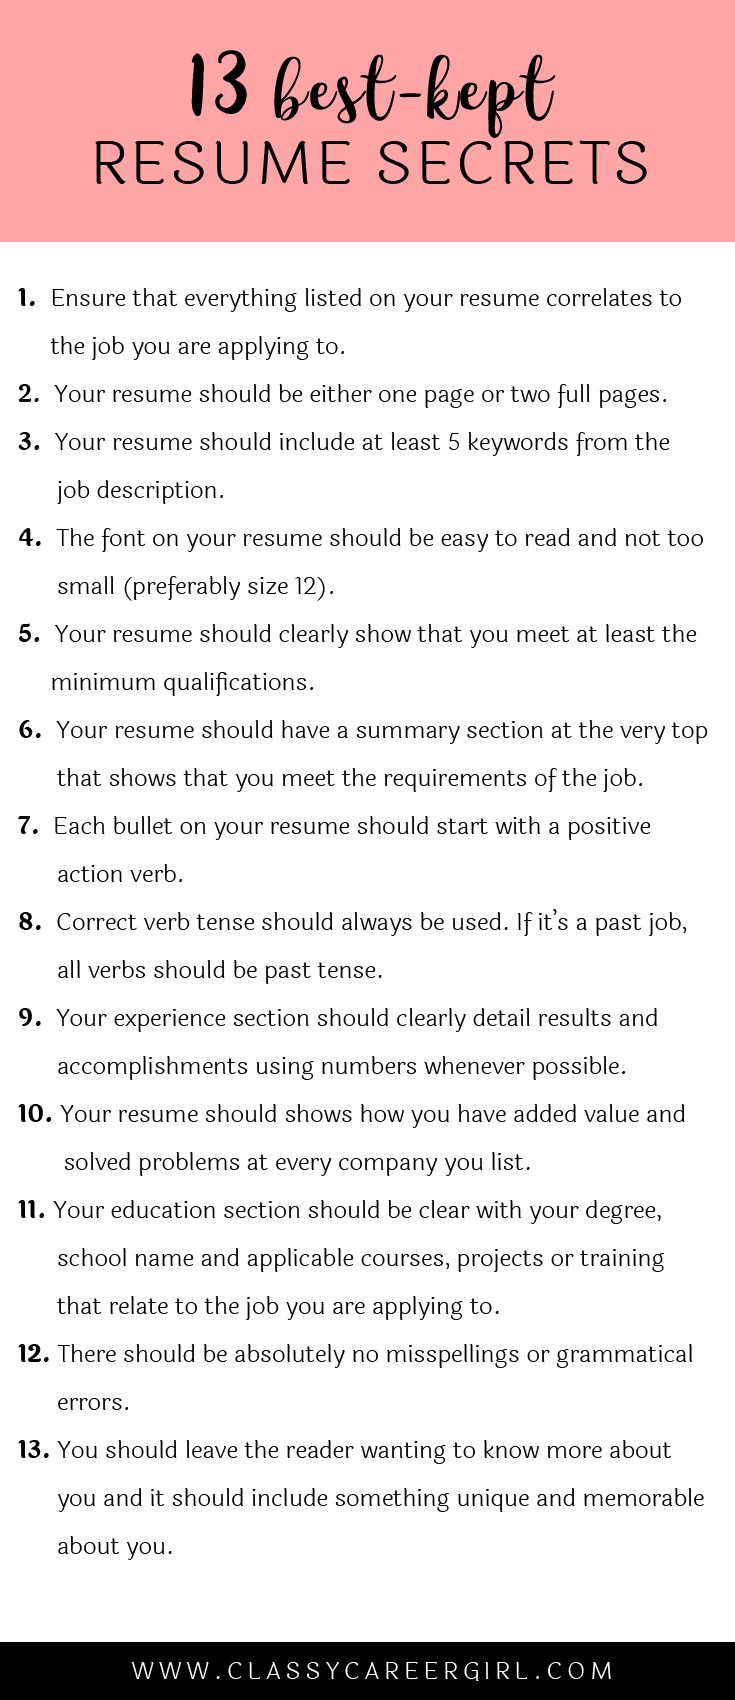 Opposenewapstandardsus  Sweet  Ideas About Resume On Pinterest  Cv Format Resume  With Inspiring Some Hiring Managers Will Toss Your Resume Out If You Dont Know These  With Awesome Best Resume Layouts Also Administrative Assistant Resume Template In Addition High School Diploma On Resume And Esl Resume As Well As Engineering Resume Tips Additionally Resume Objective For Any Job From Pinterestcom With Opposenewapstandardsus  Inspiring  Ideas About Resume On Pinterest  Cv Format Resume  With Awesome Some Hiring Managers Will Toss Your Resume Out If You Dont Know These  And Sweet Best Resume Layouts Also Administrative Assistant Resume Template In Addition High School Diploma On Resume From Pinterestcom